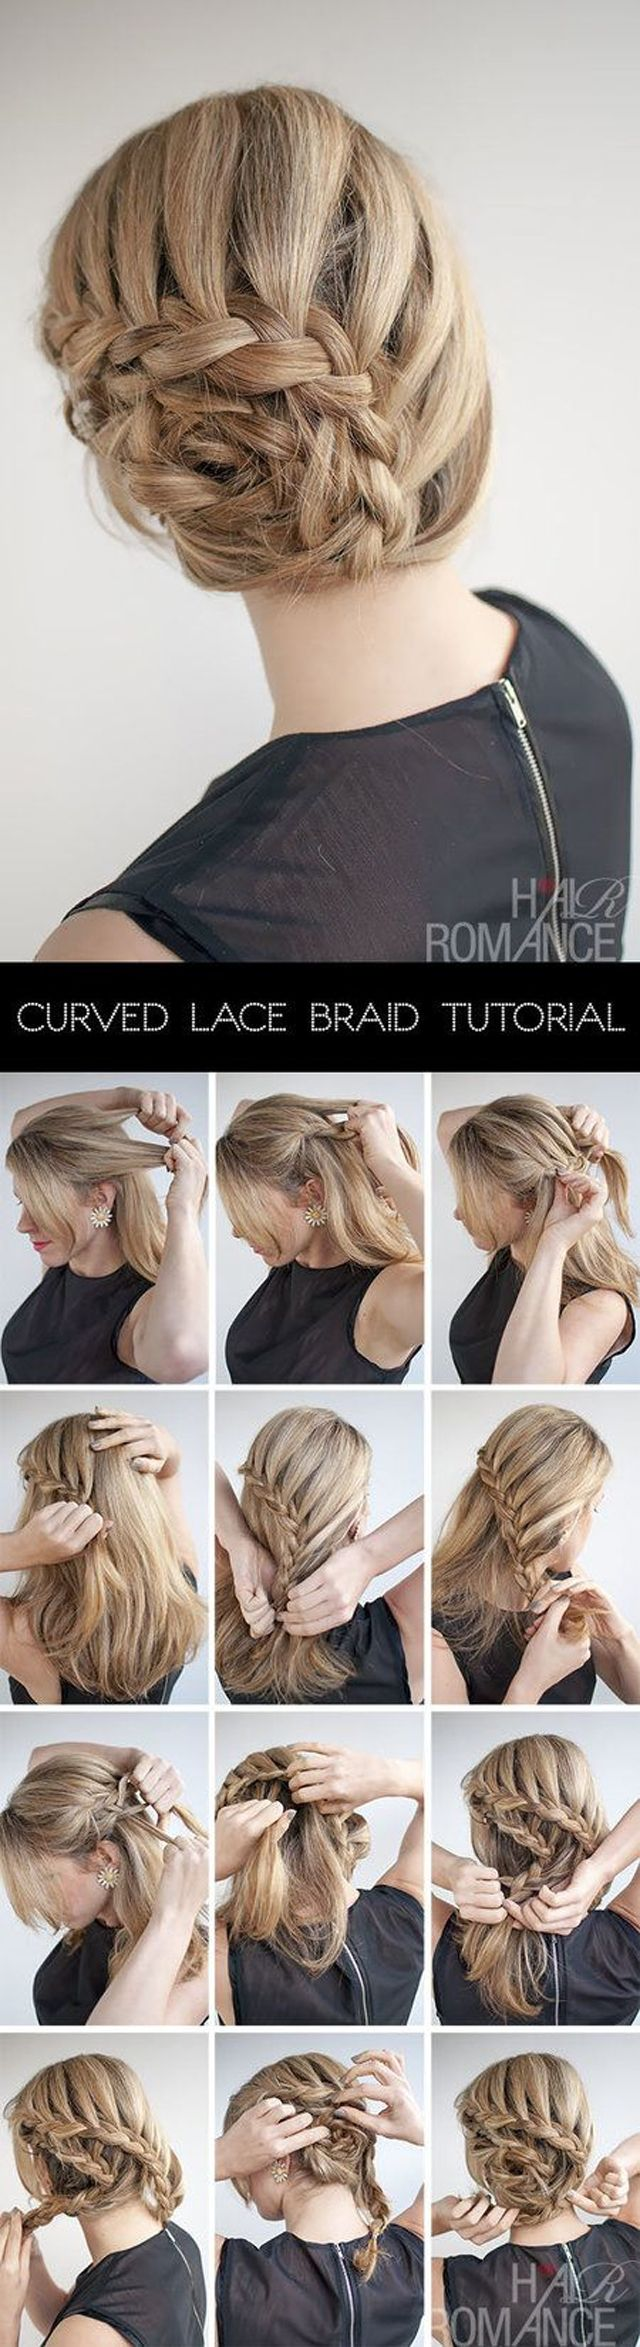 best coiffure images on pinterest hairstyle ideas cute